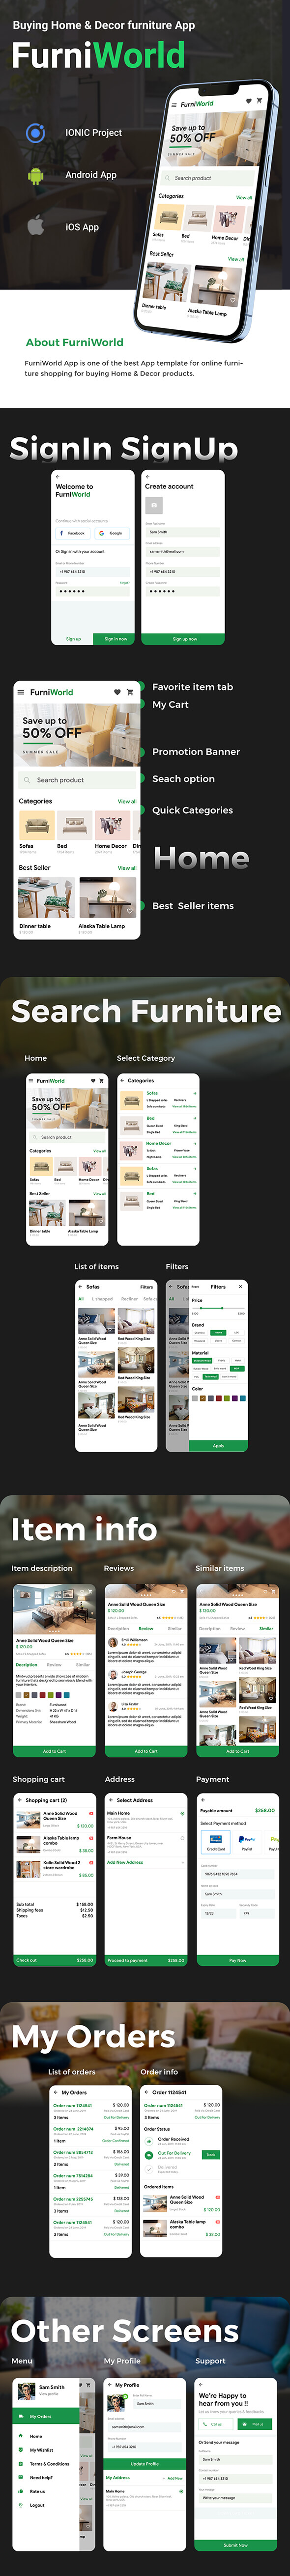 Online Furniture Selling Android App + Furniture Buying iOS App Template | IONIC 3 | FurniWorld - 2